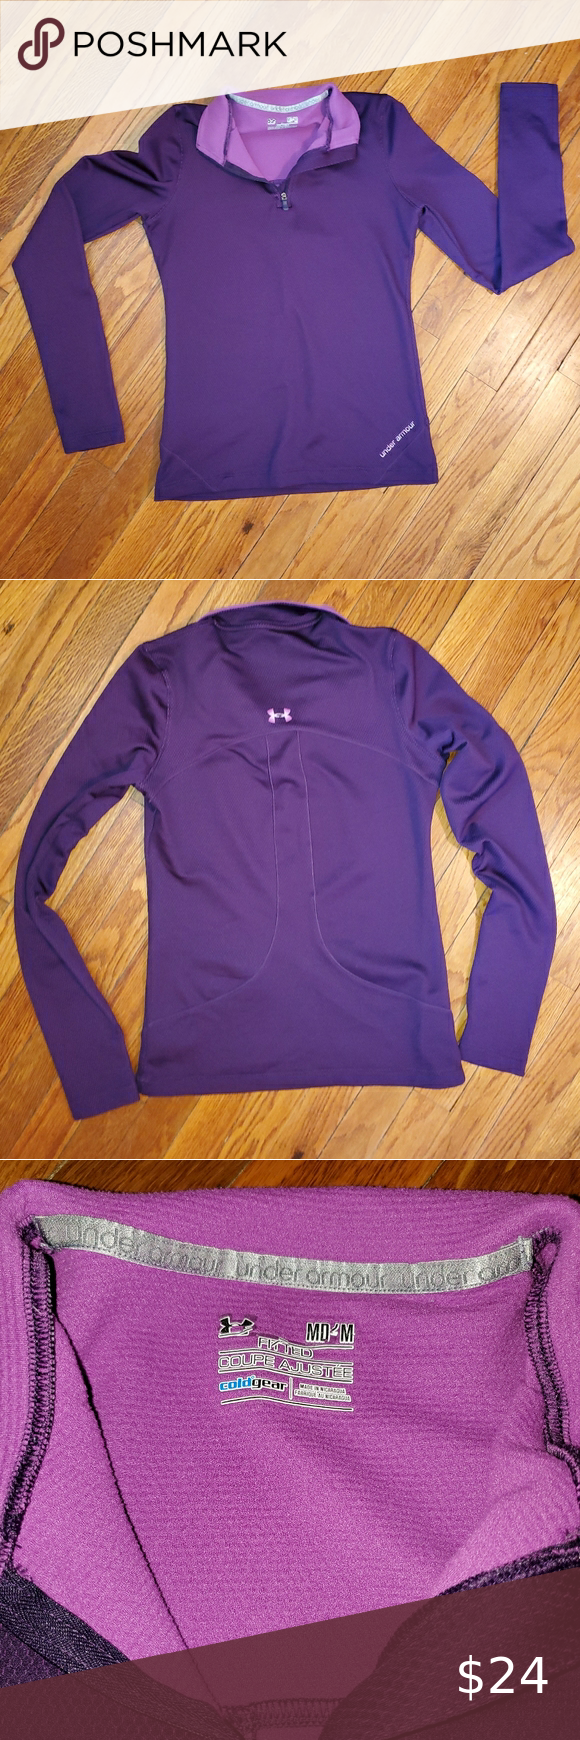 Under Armour cold gear pullover Lightweight purple/plum Under Armour cold gear pullover.   Size medium  Like new condition   Beautiful purple color. Photos were taken with and without flash to show true color, but please note, the pictures do not capture this color exactly.    Smoke free home     #0202 Under Armour Tops